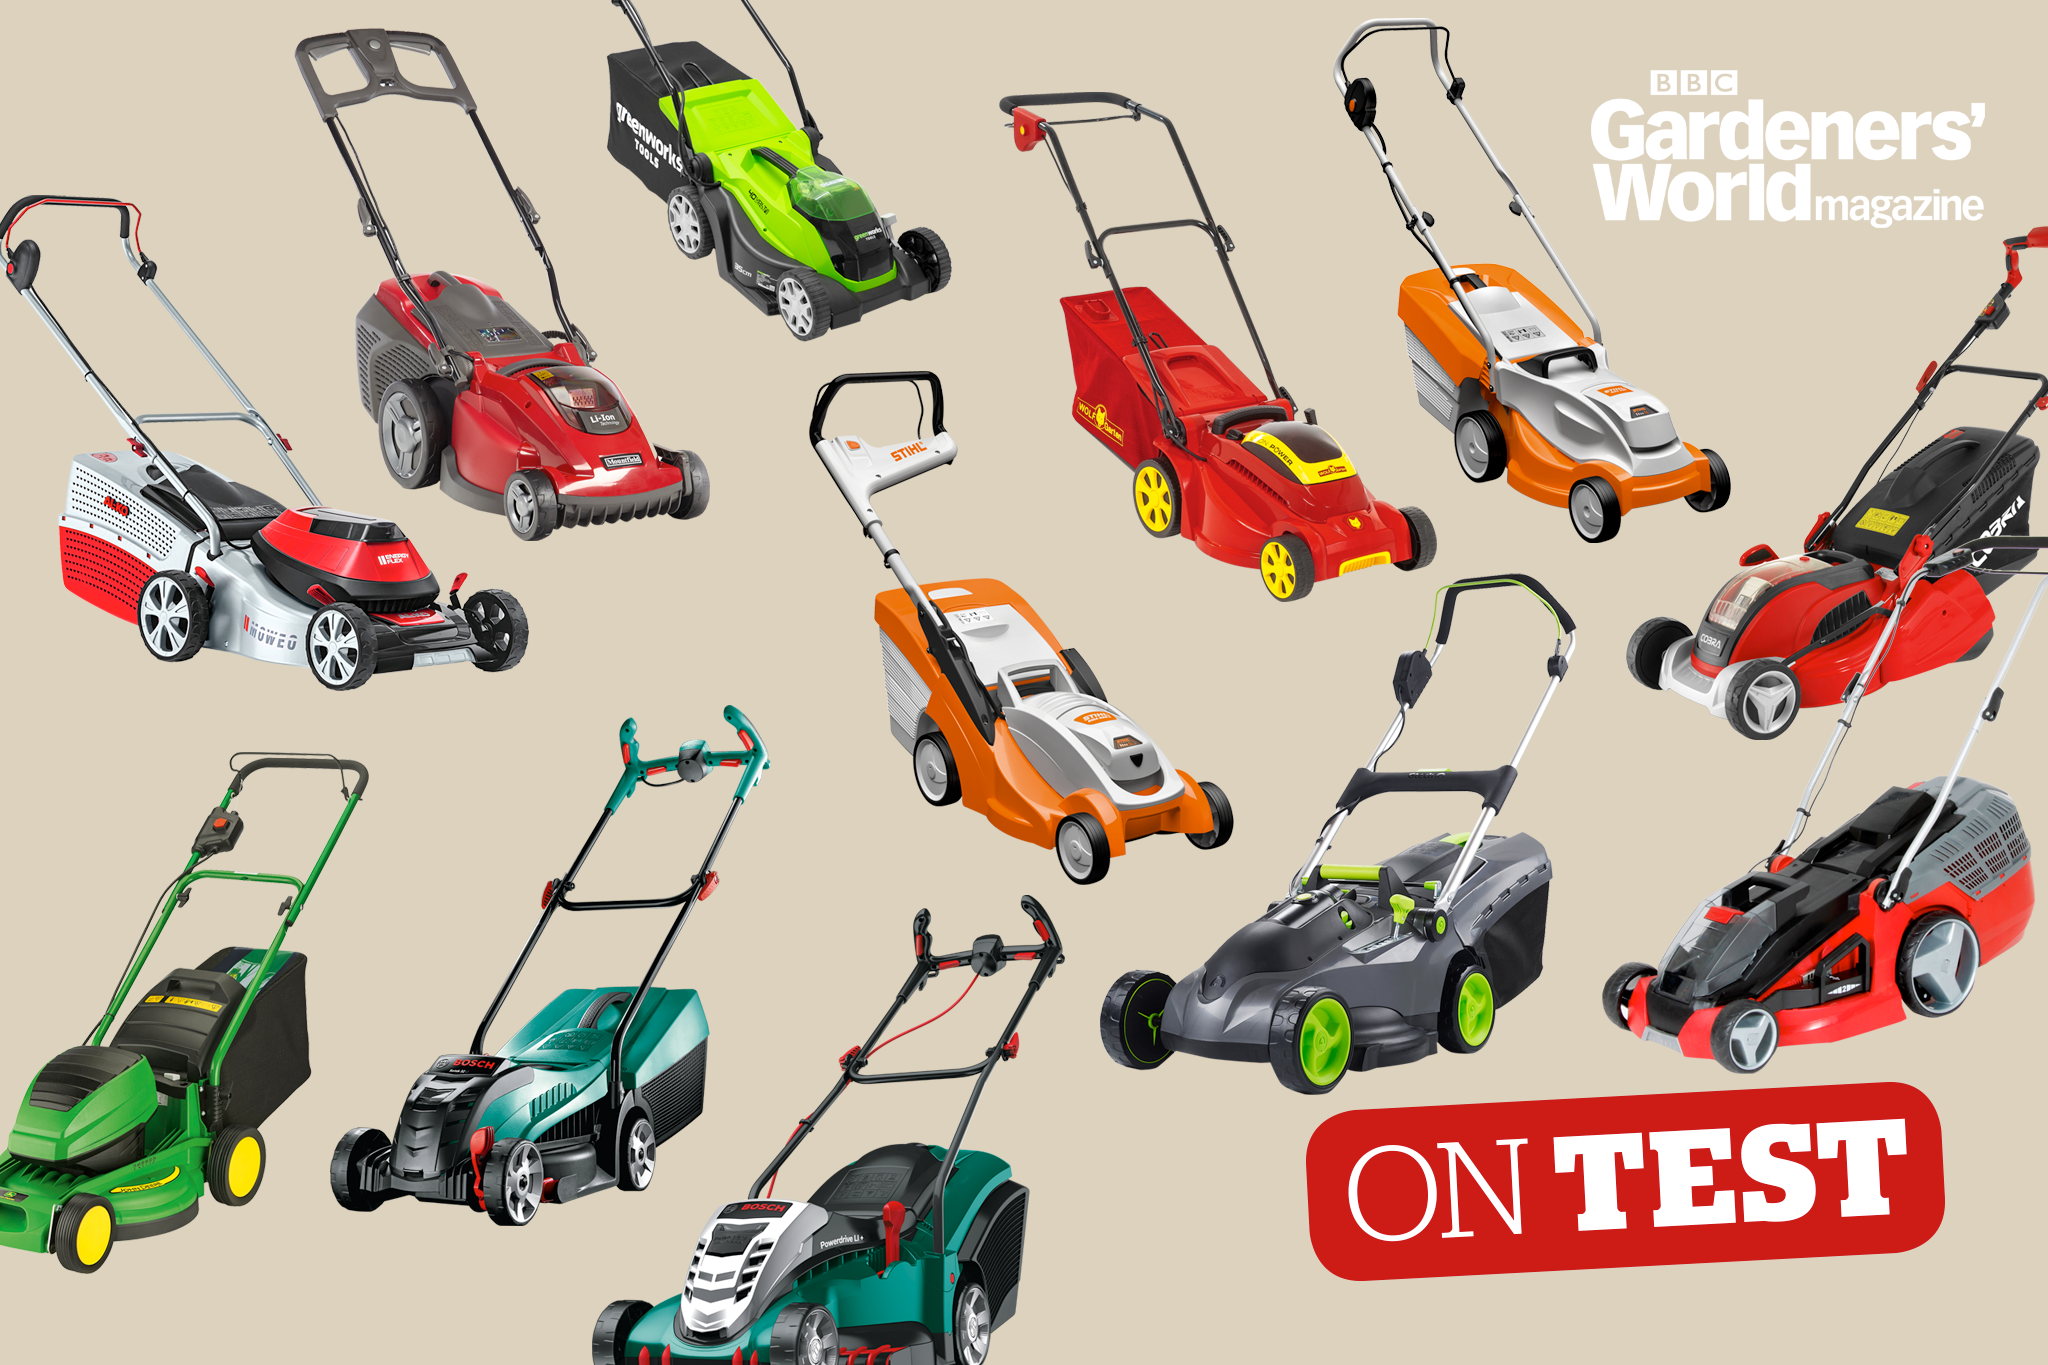 On Test - Cordless mowers (small to medium lawns)